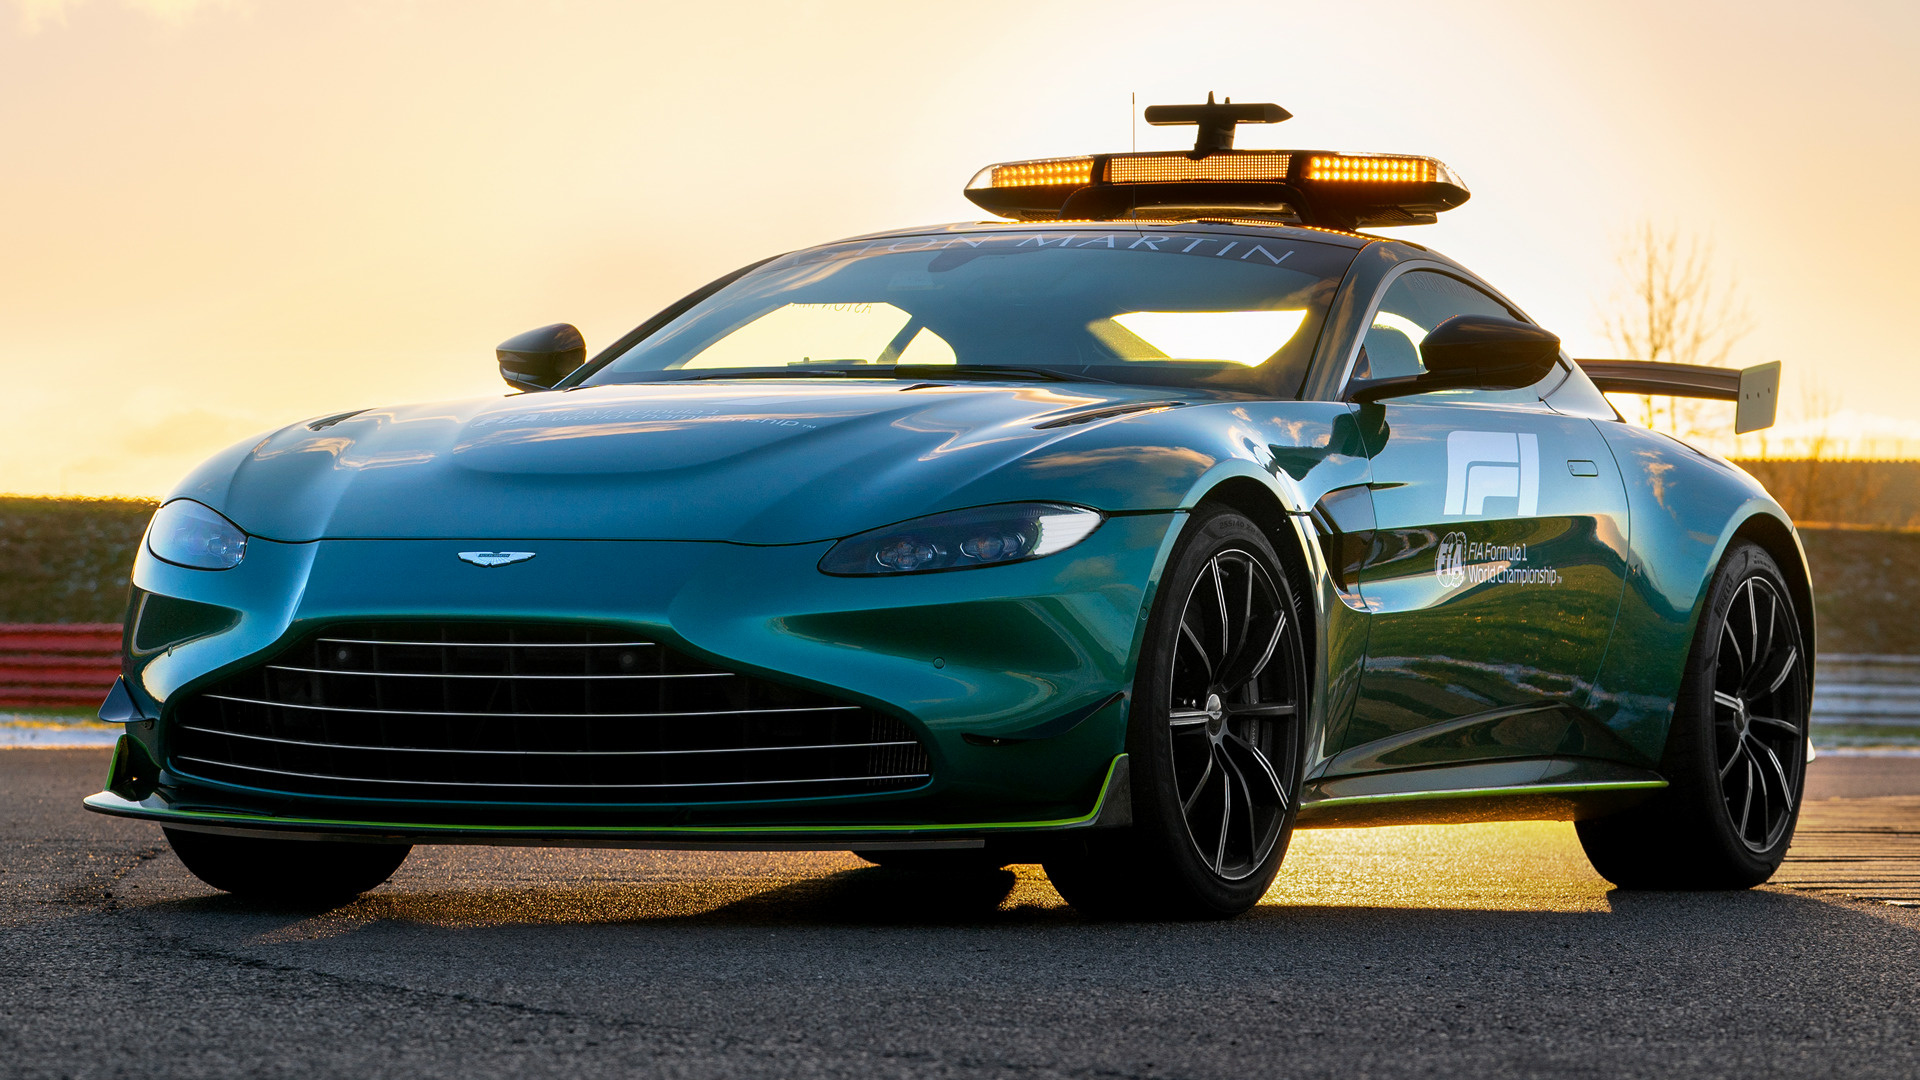 If you're purchasing your first car, buying used is an excellent option. 2021 Aston Martin Vantage F1 Safety Car Wallpapers And Hd Images Car Pixel